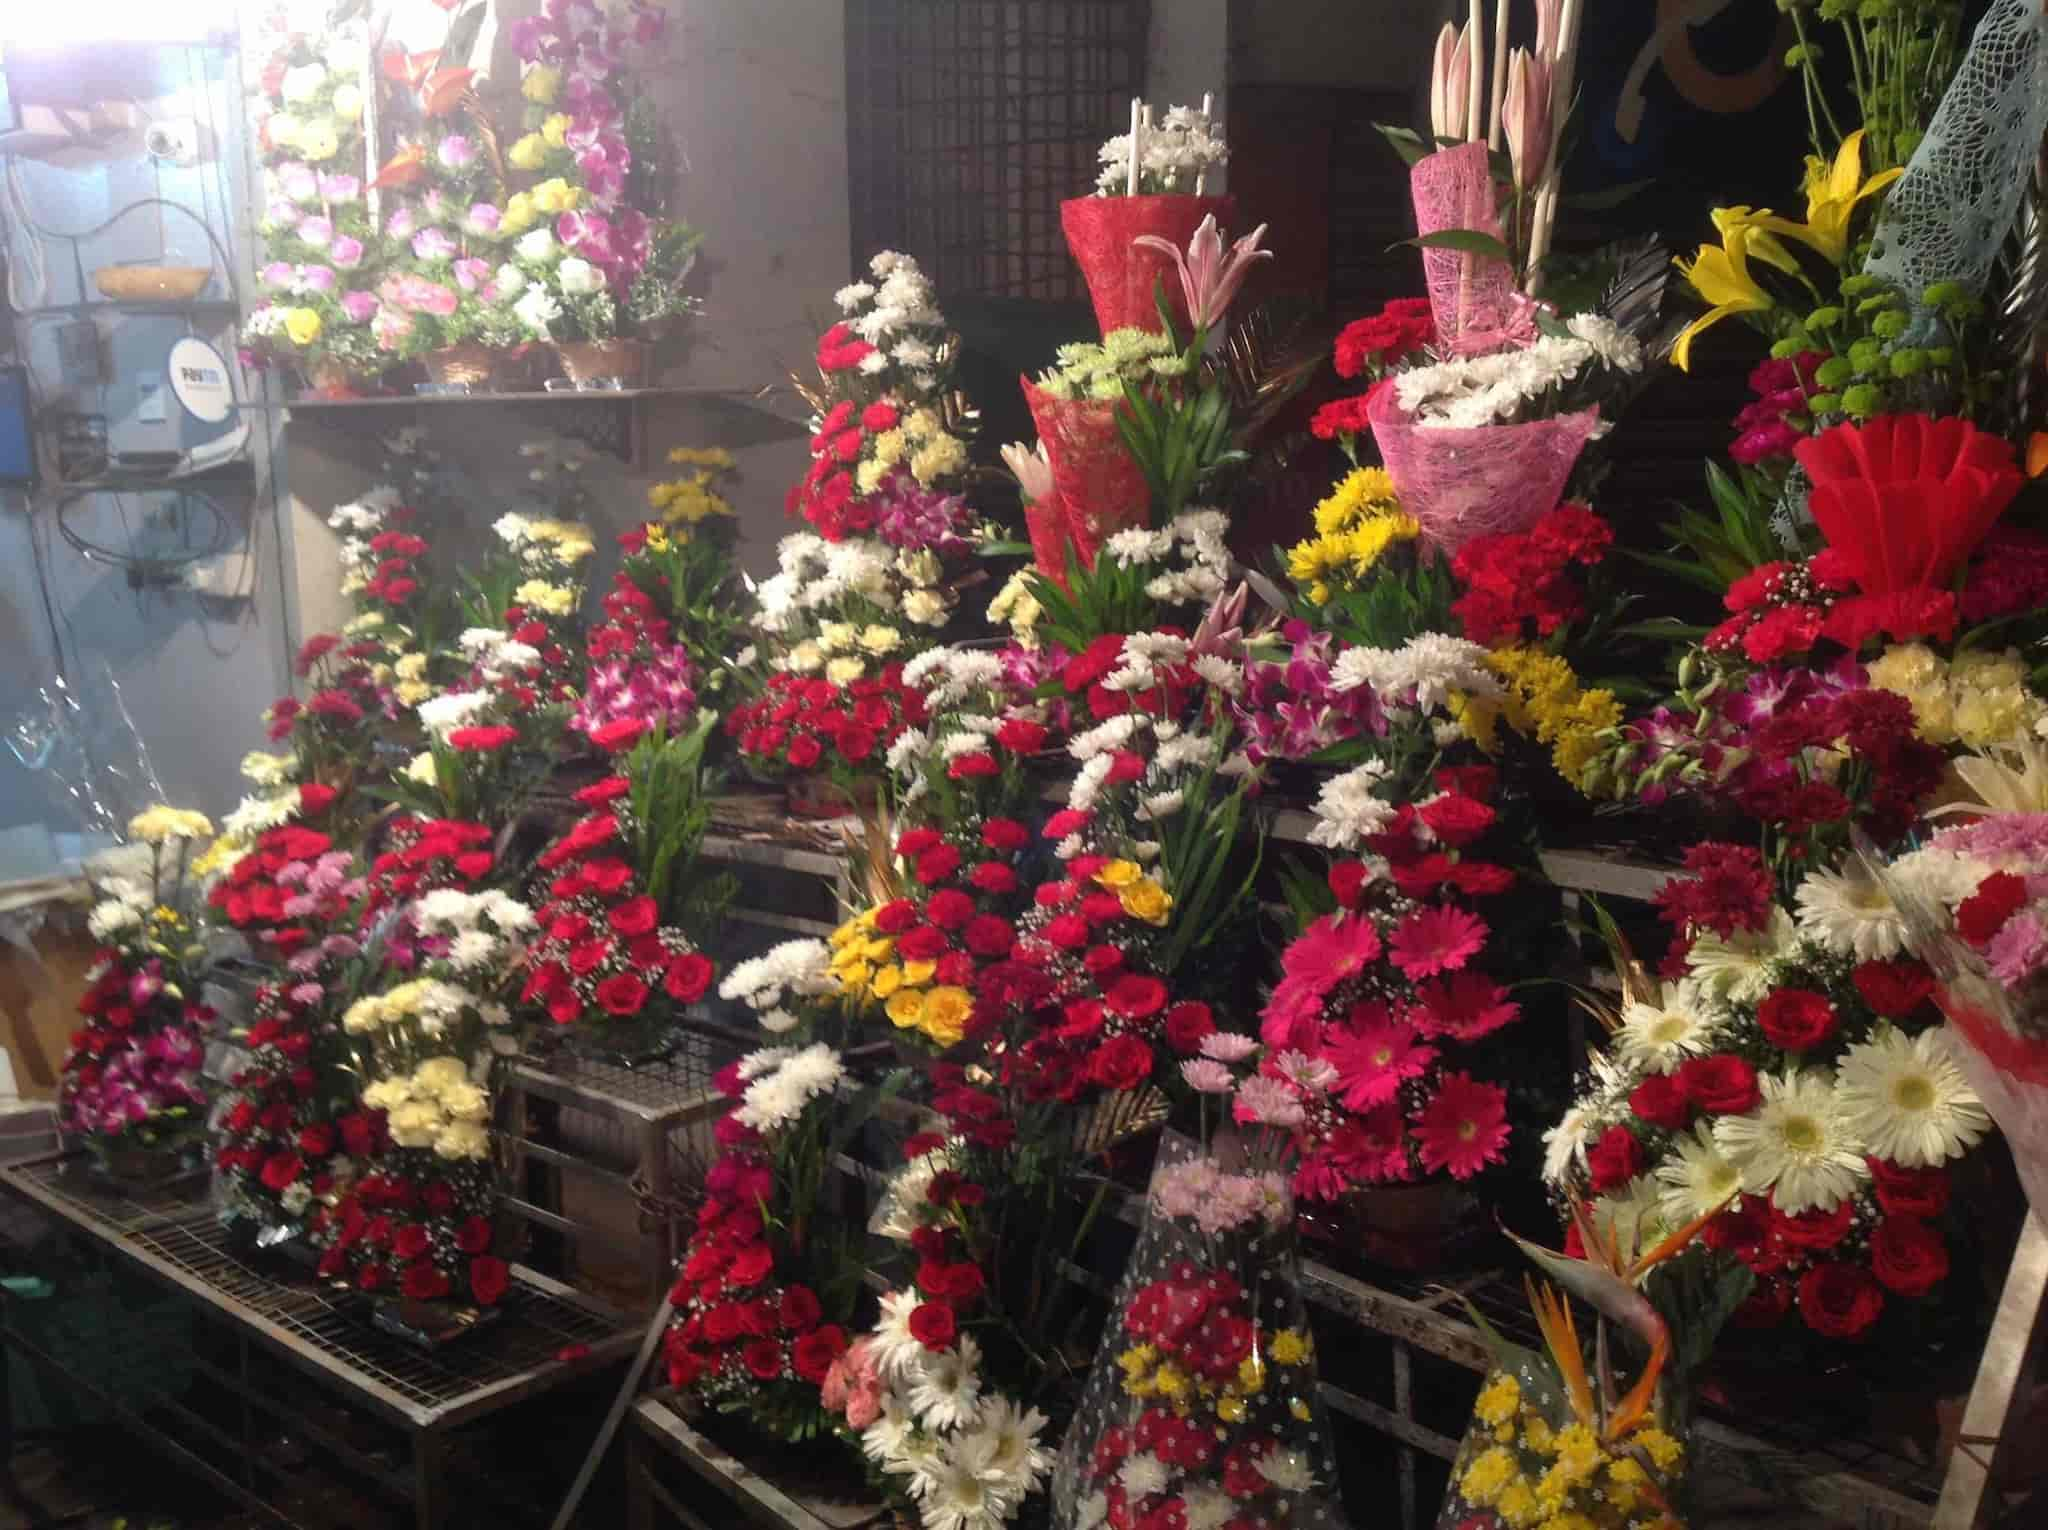 Hyderabad Gifts Delivery, Banjara Hills - 24 Hours Florists Home Delivery in Hyderabad, Hyderabad - Justdial